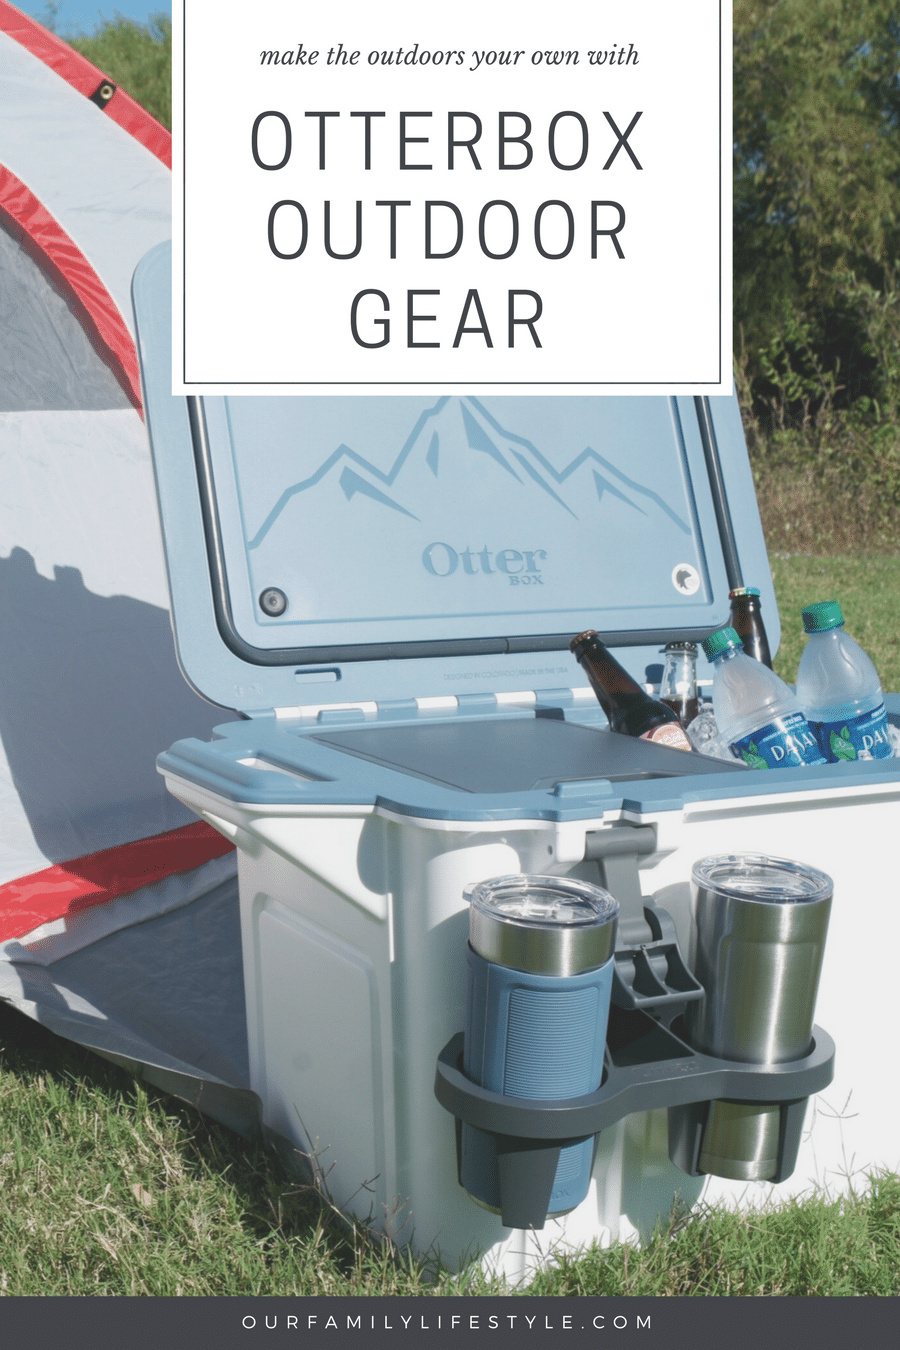 Make the Outdoors Your Own With OtterBox Outdoor Gear